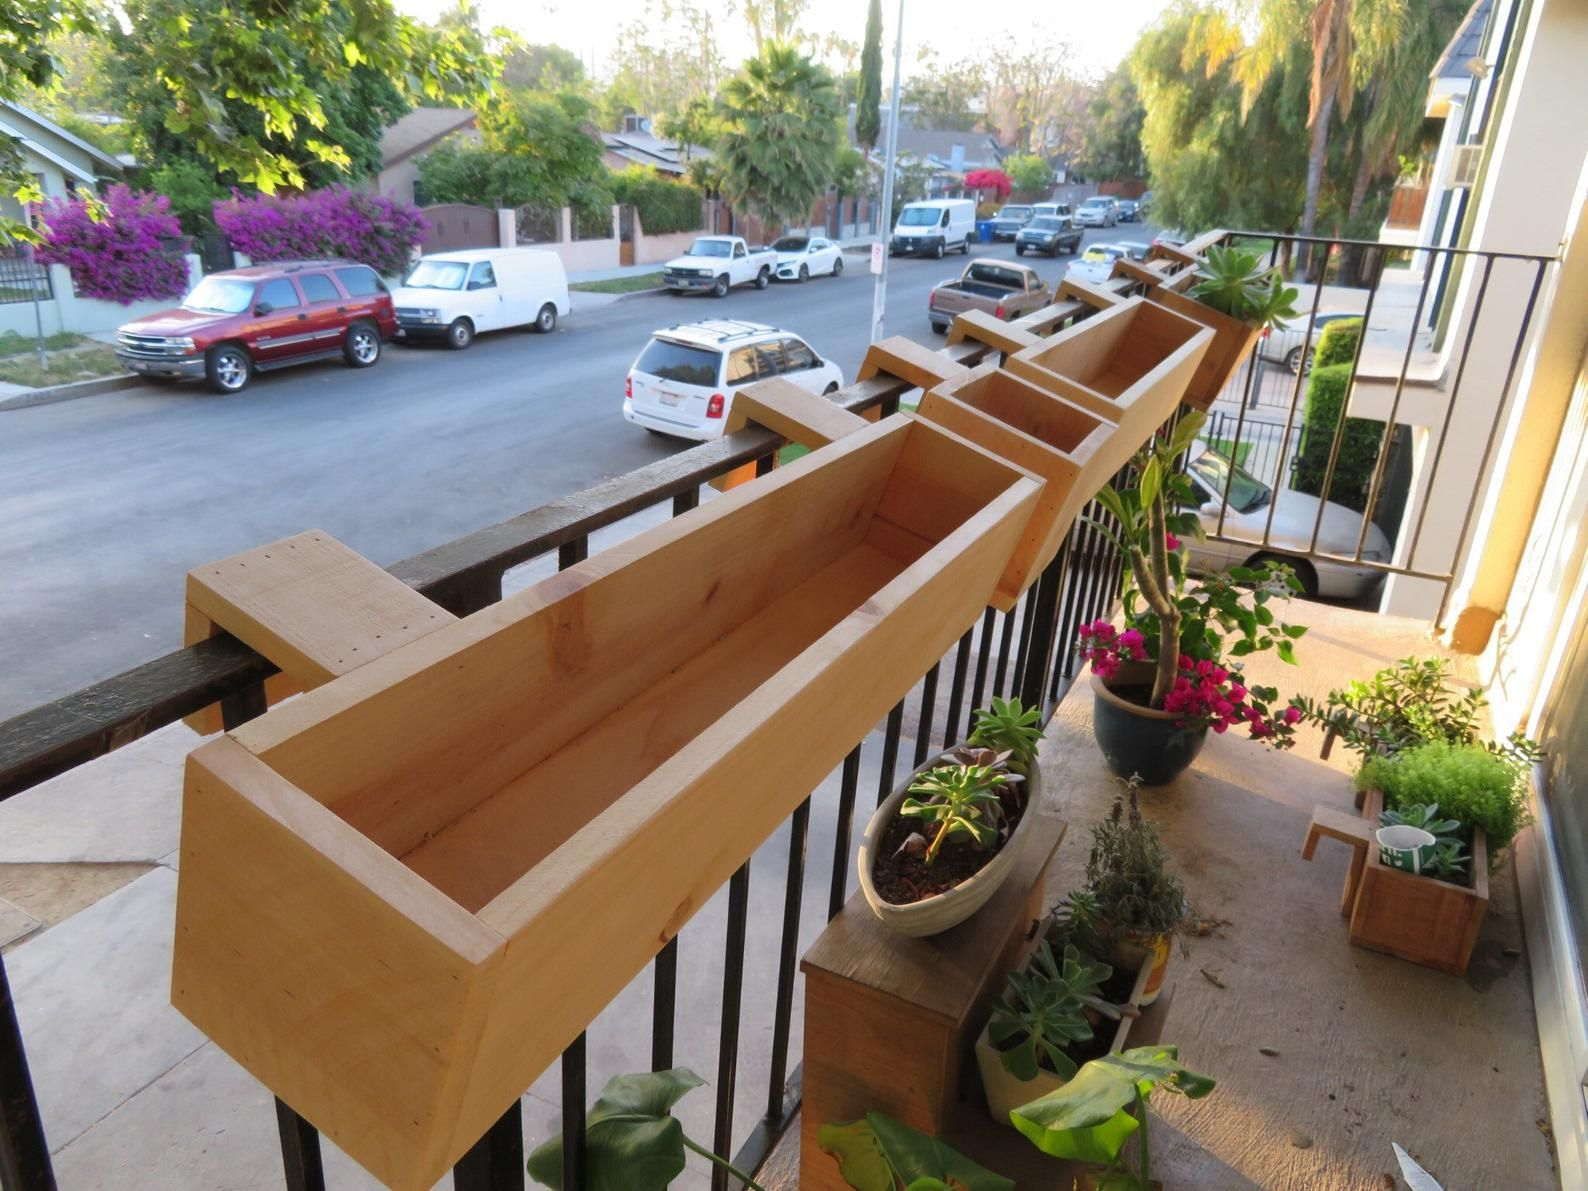 Balcony Rail Planter Box Etsy Small Balcony Garden Balcony Planters Apartment Balcony Garden